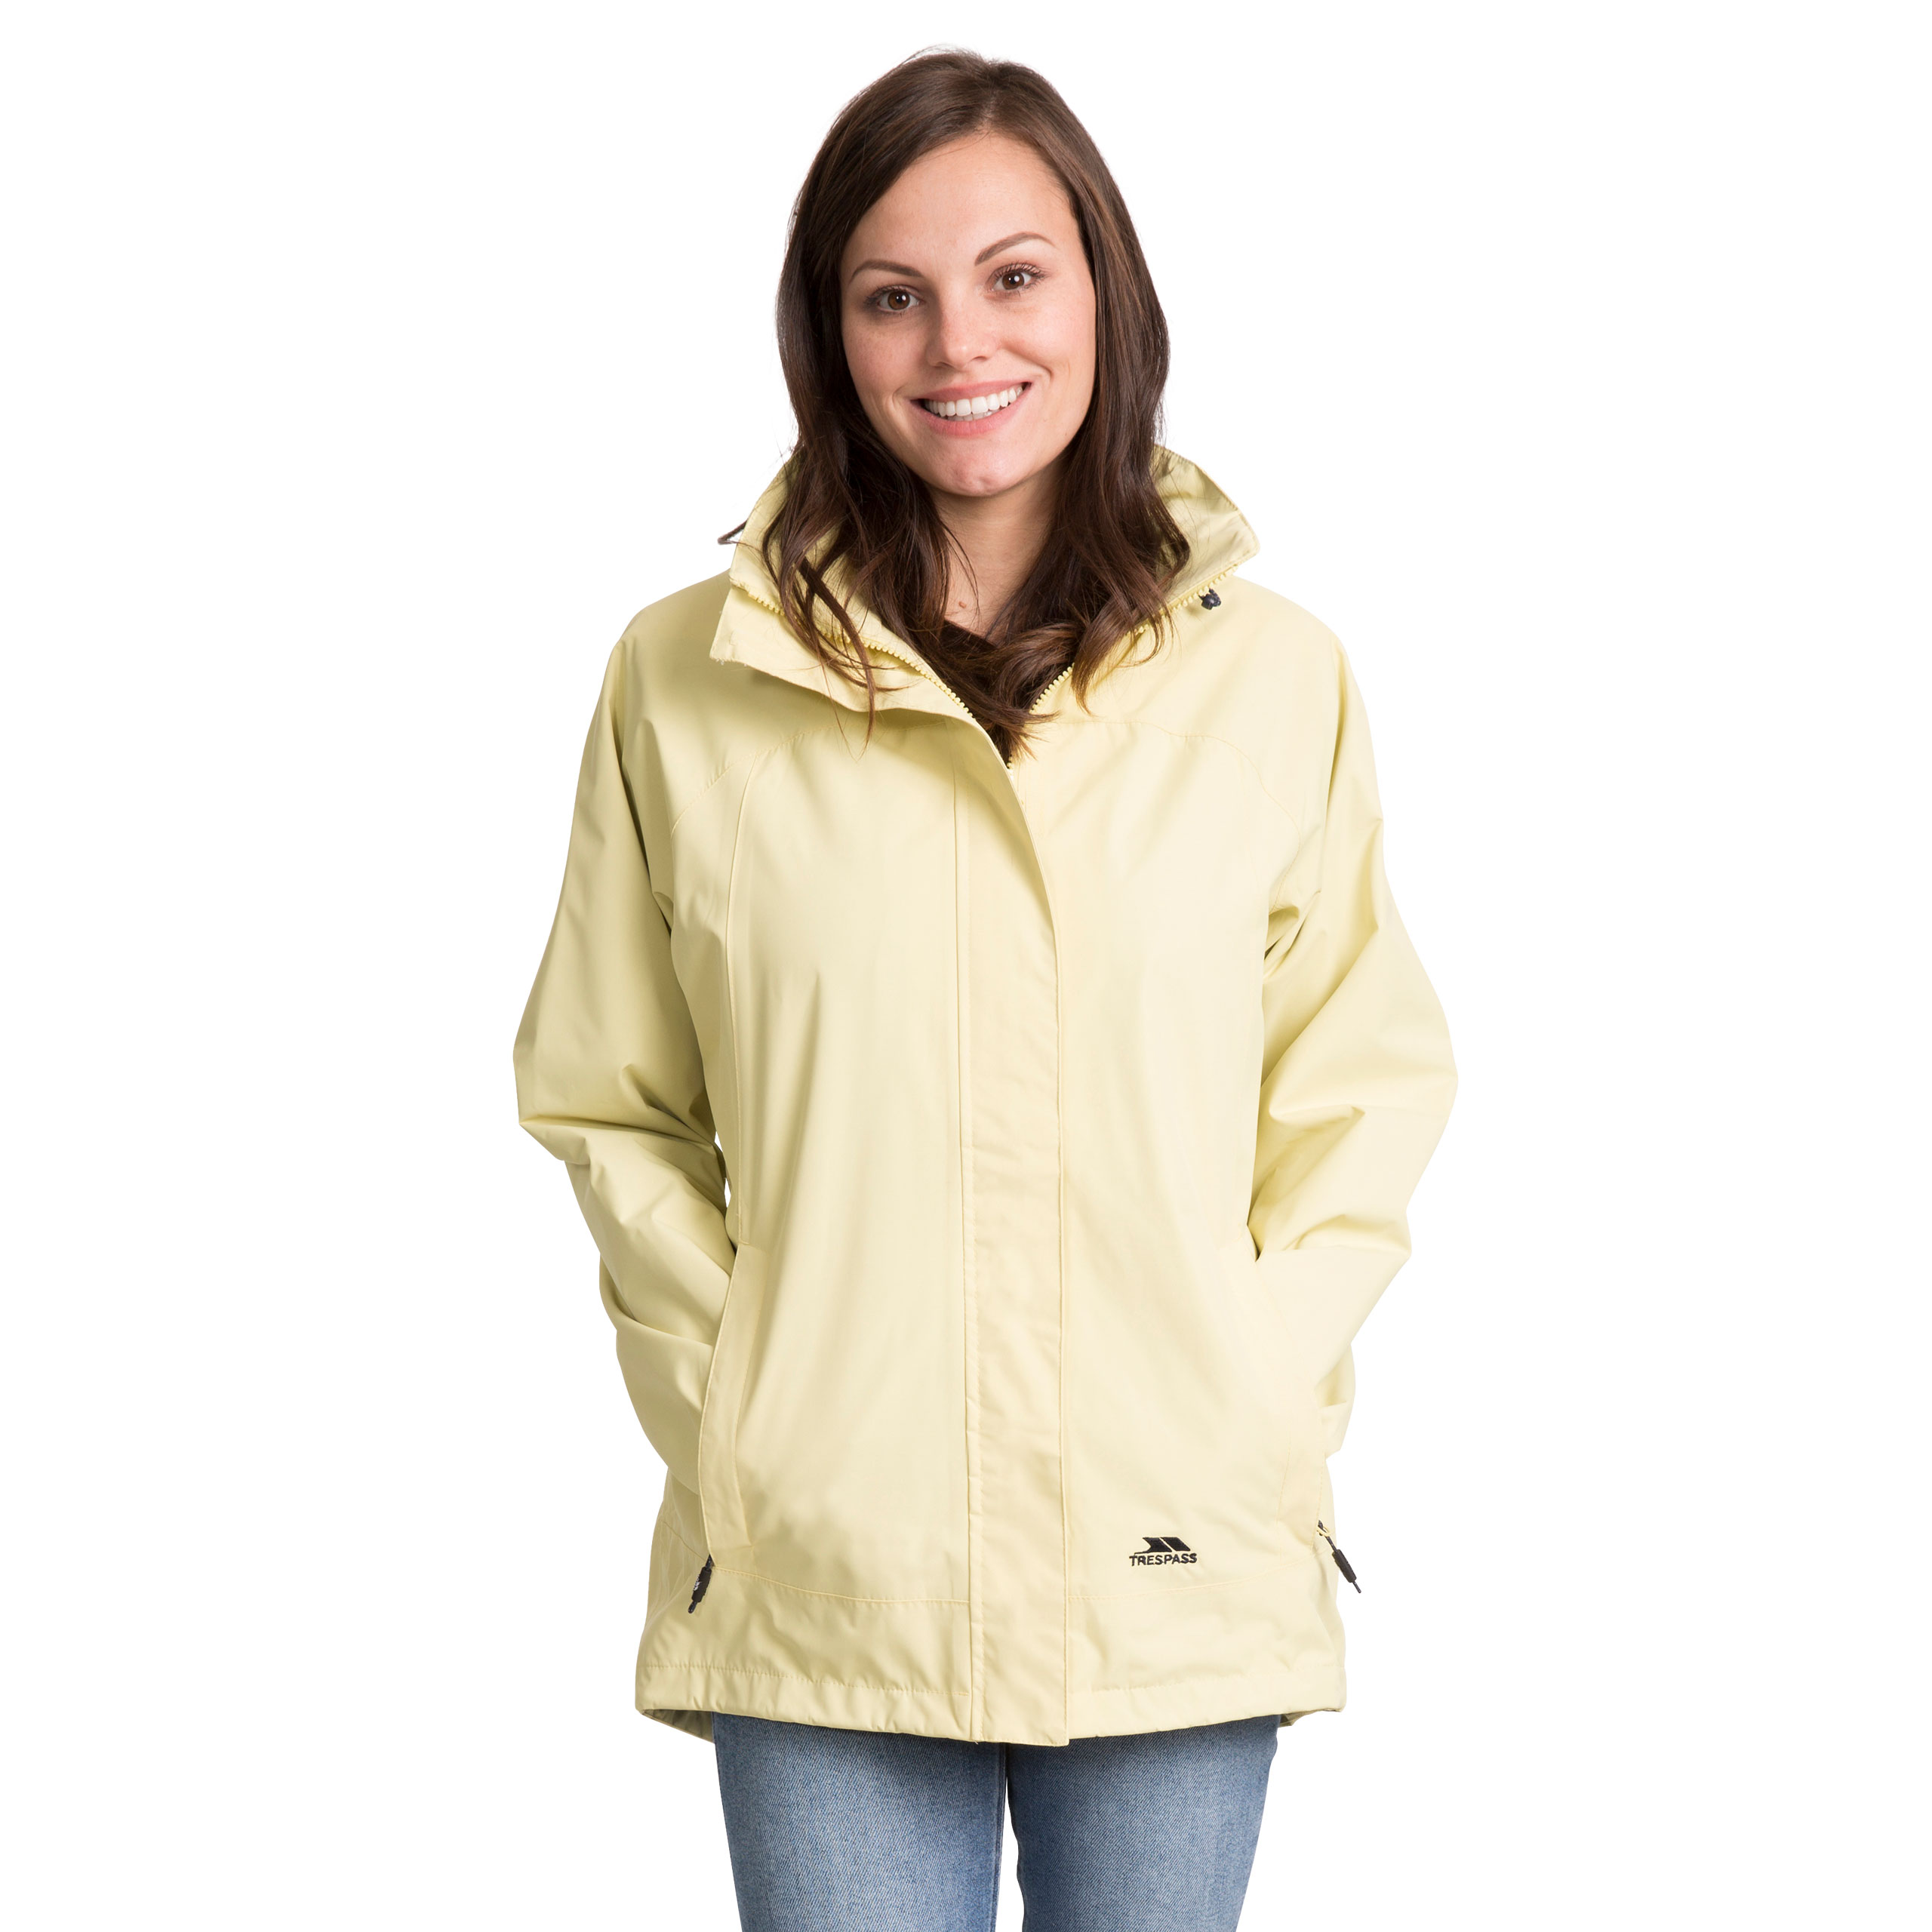 Trespass-Womens-Waterproof-Hooded-Jacket-Outdoor-Cycling-Raincoat thumbnail 23